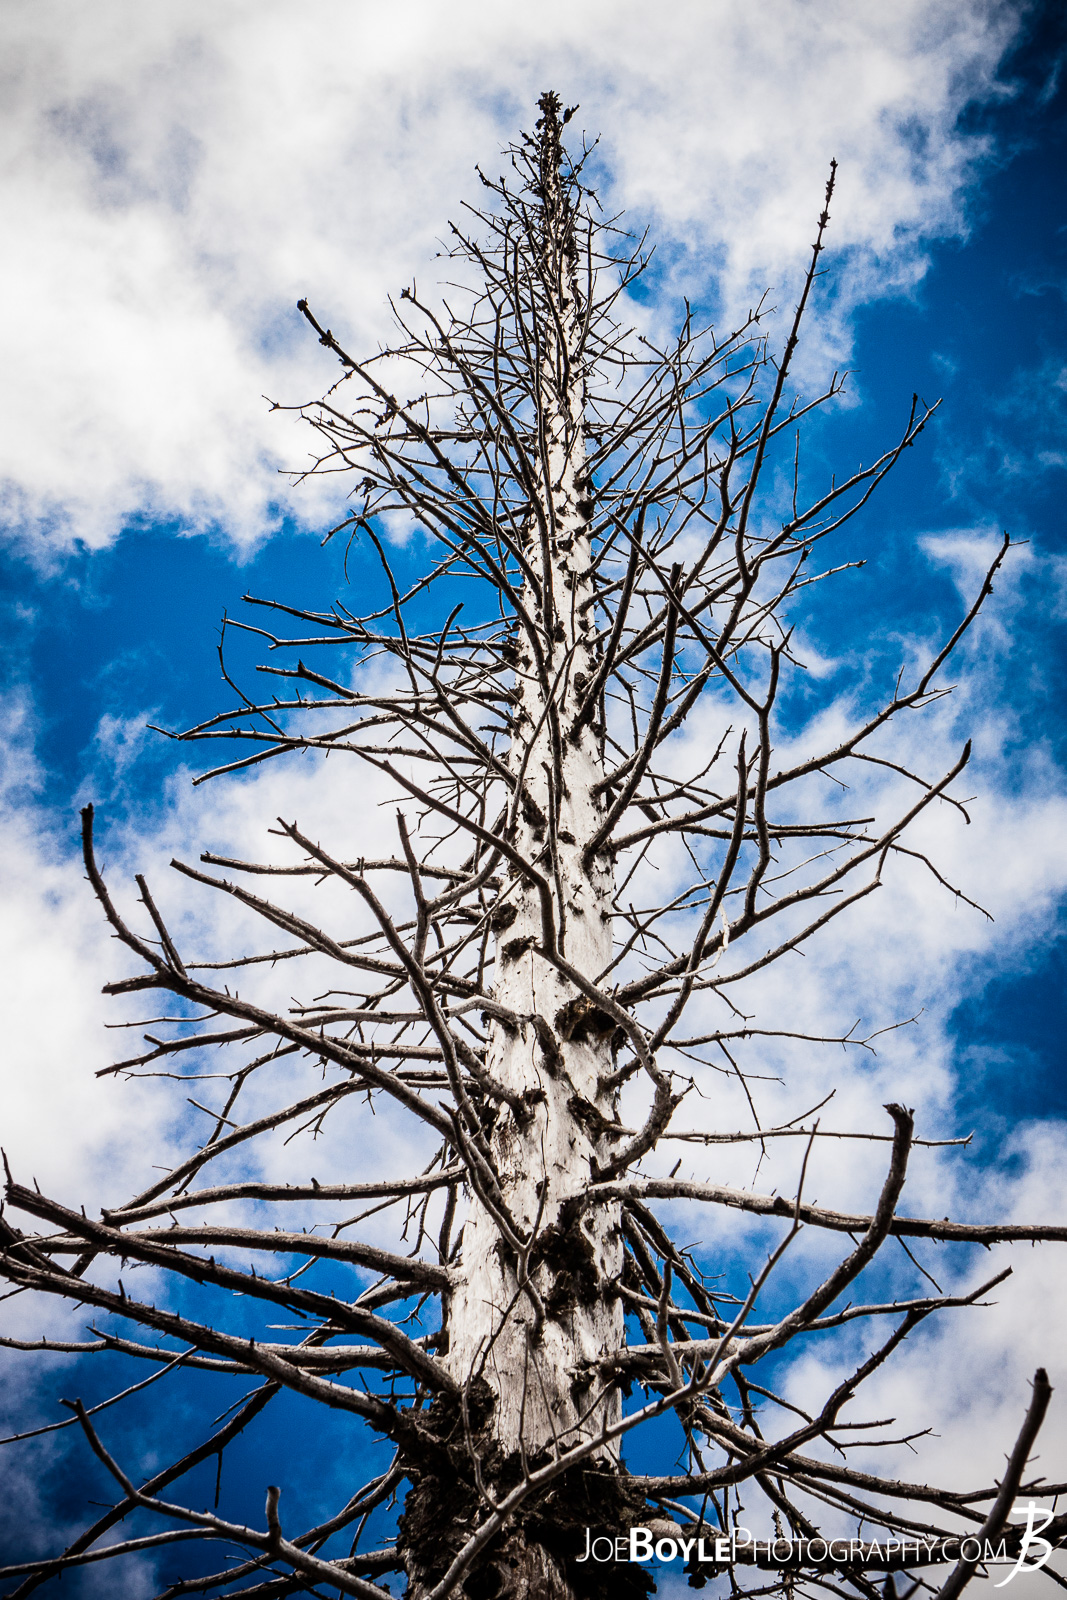 Not everyone would take pictures of a dead pine tree, but I thought this looked pretty cool. It was gnarly and had some interesting contrast against the blue sky!